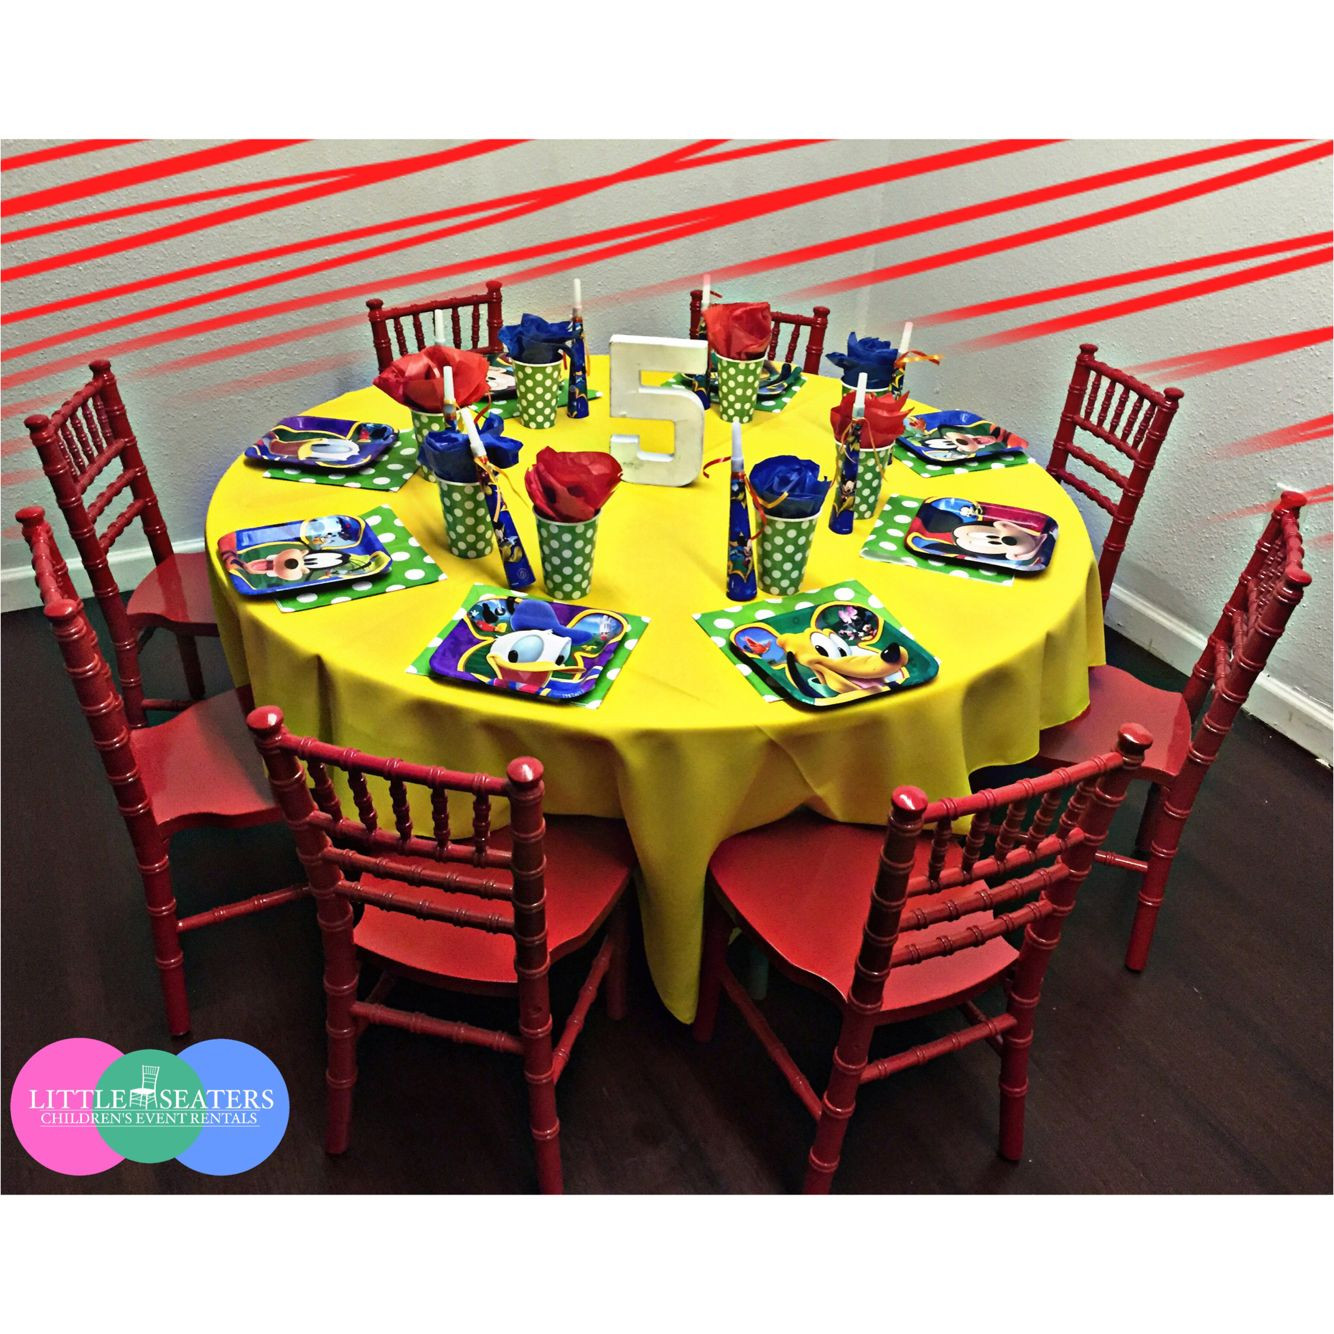 Kids Party Rental Houston  Mickey & Friends Theme Party 😍😍😍😍 Rental items includes